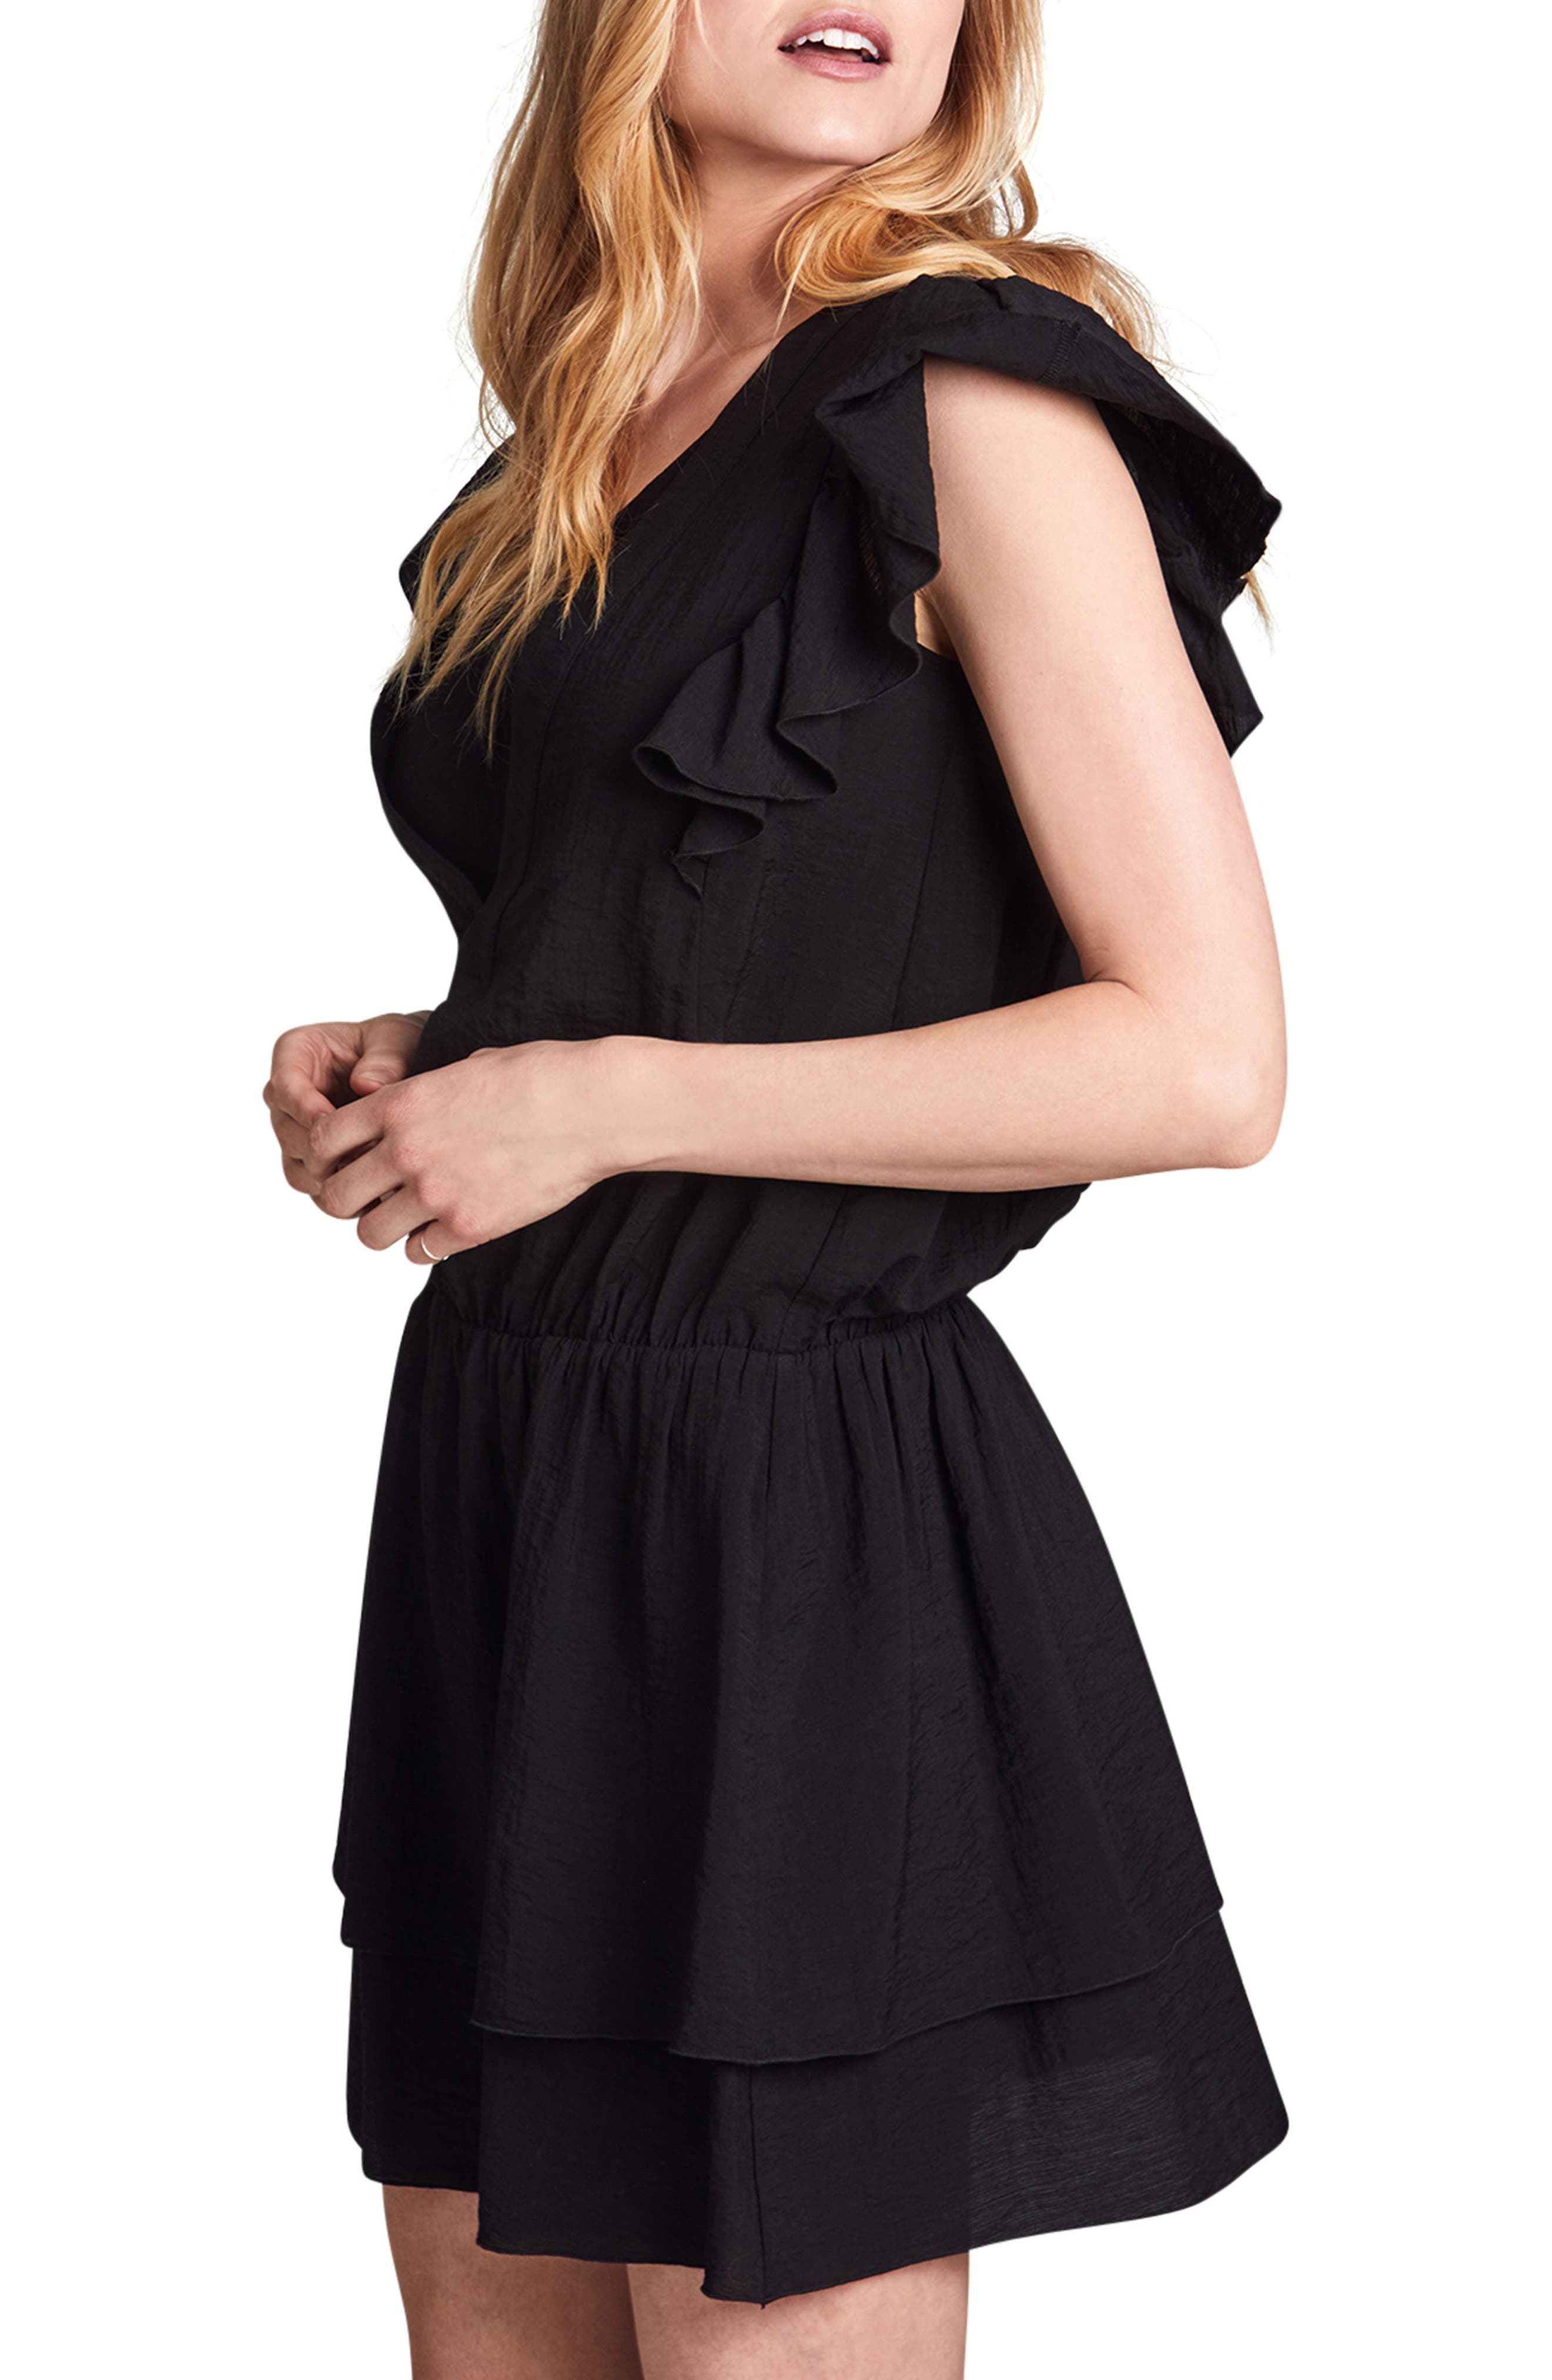 Naomi Nursing Dress,                             Alternate thumbnail 3, color,                             BLACK